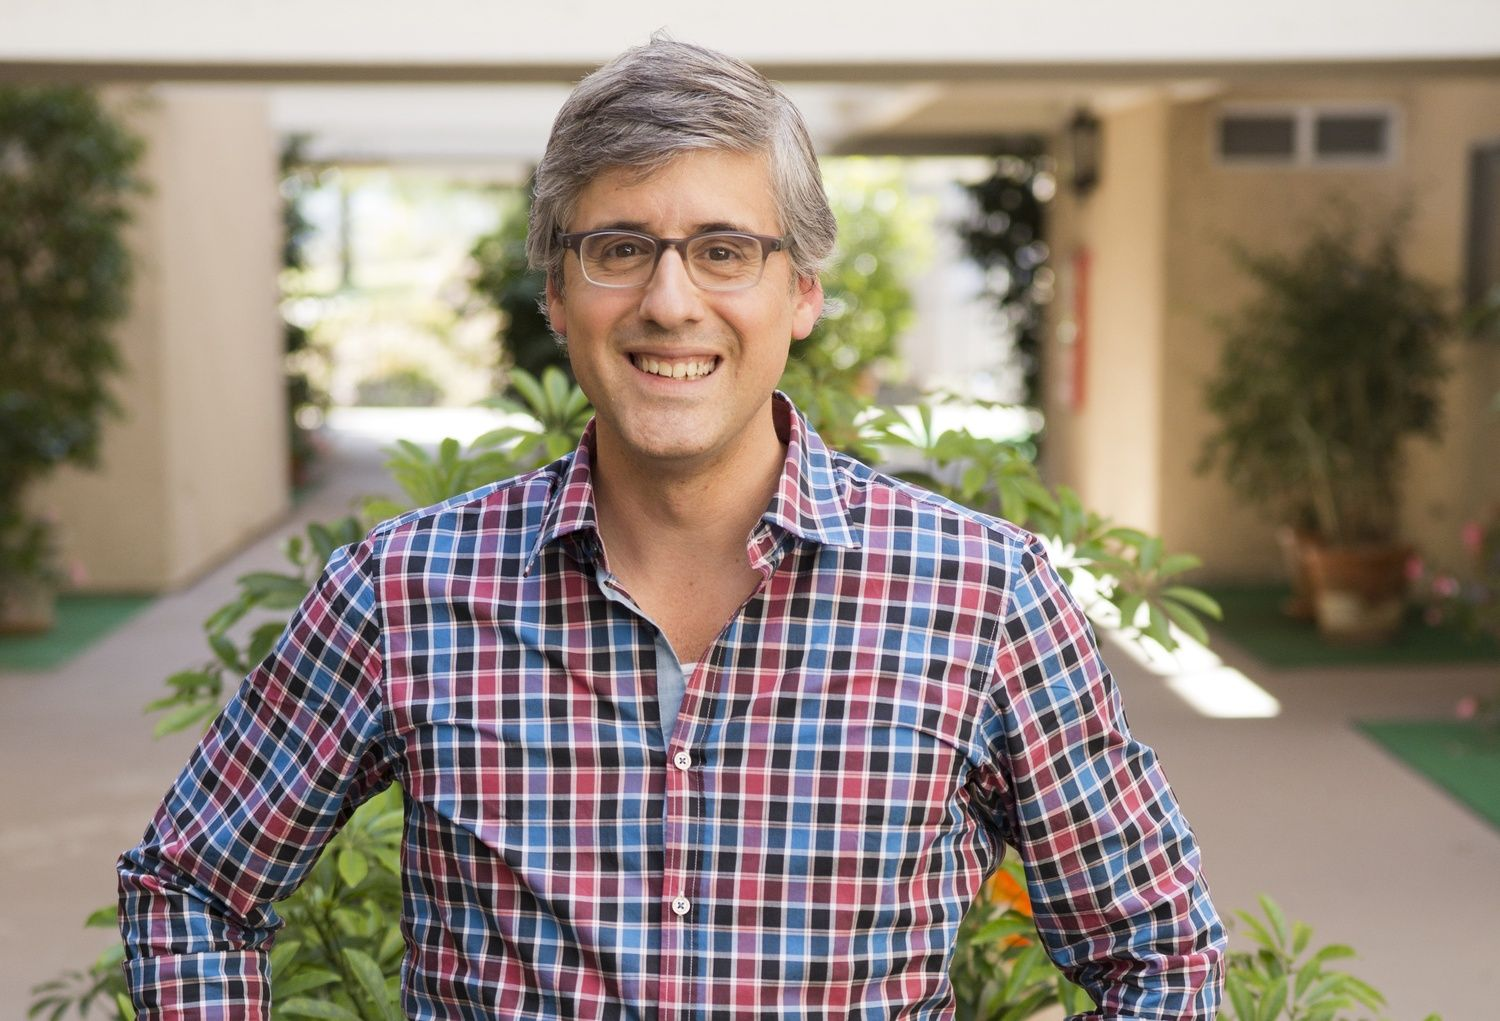 Caption: Mo Rocca, Credit: The Cooking Channel